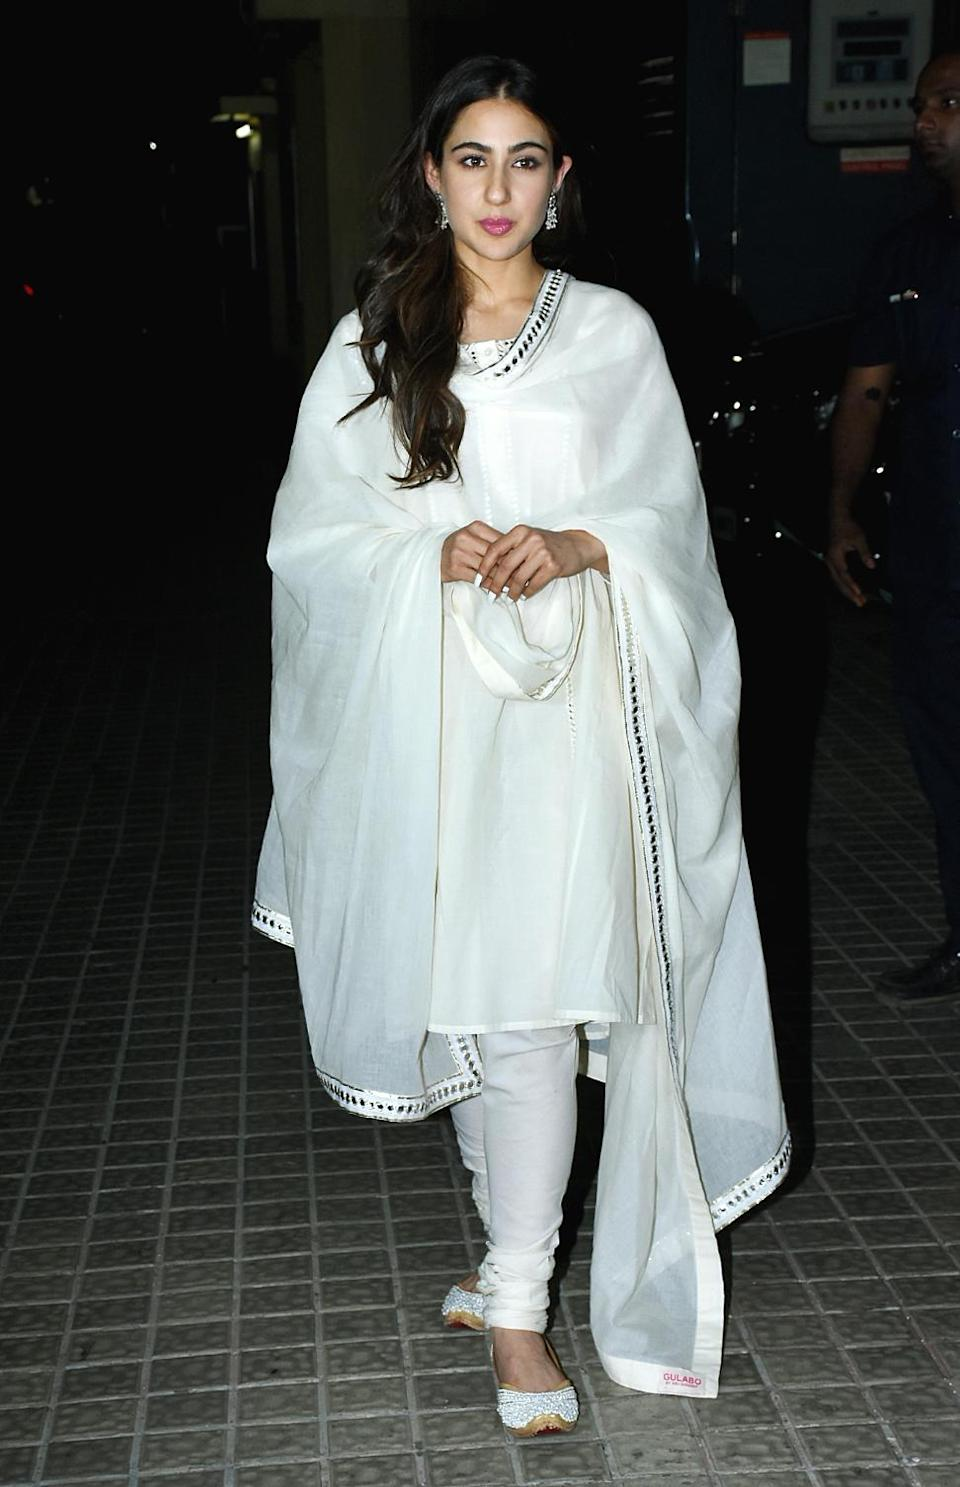 "<p>Sara has graduated from Columbia University – an ivy league college in the US. She joined the film industry after she completed her education, as per her dad, Saif's wishes, ""My father used to say I should finish my studies first before entering films. He was fully supportive if I wanted to do films but wanted me to study first."" </p>"